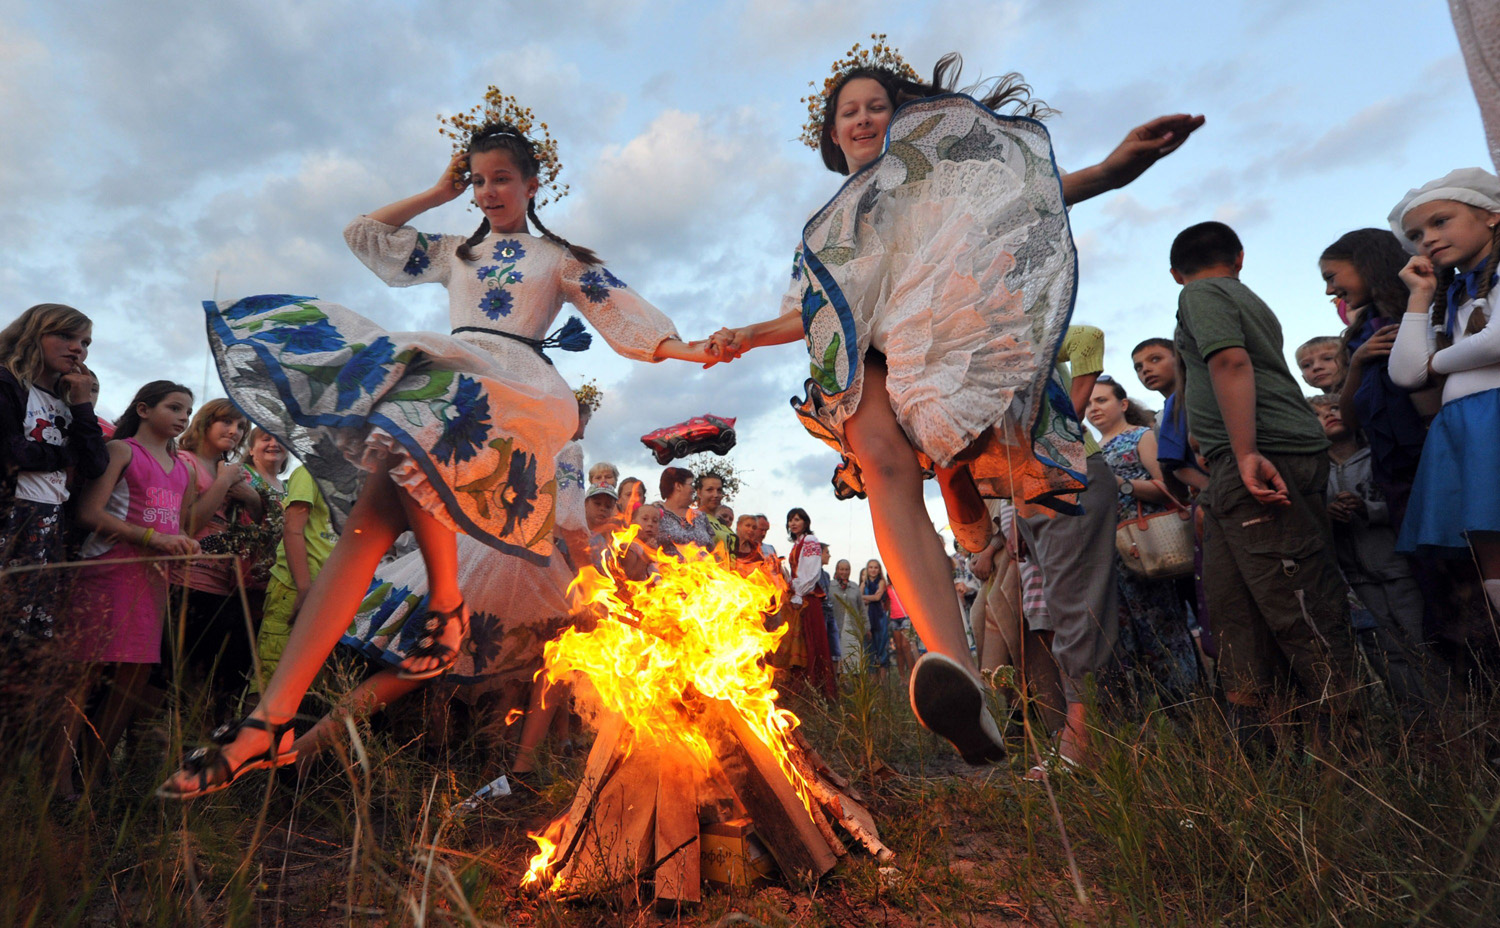 Wearing traditional Belarus costumes, girls jump over a bonfire as they celebrate the Ivan Kupala night, an ancient heathen holiday, held in the countryside near the town of Turov, some 260 km southwest of the capital Minsk, Belarus on July 6, 2014.